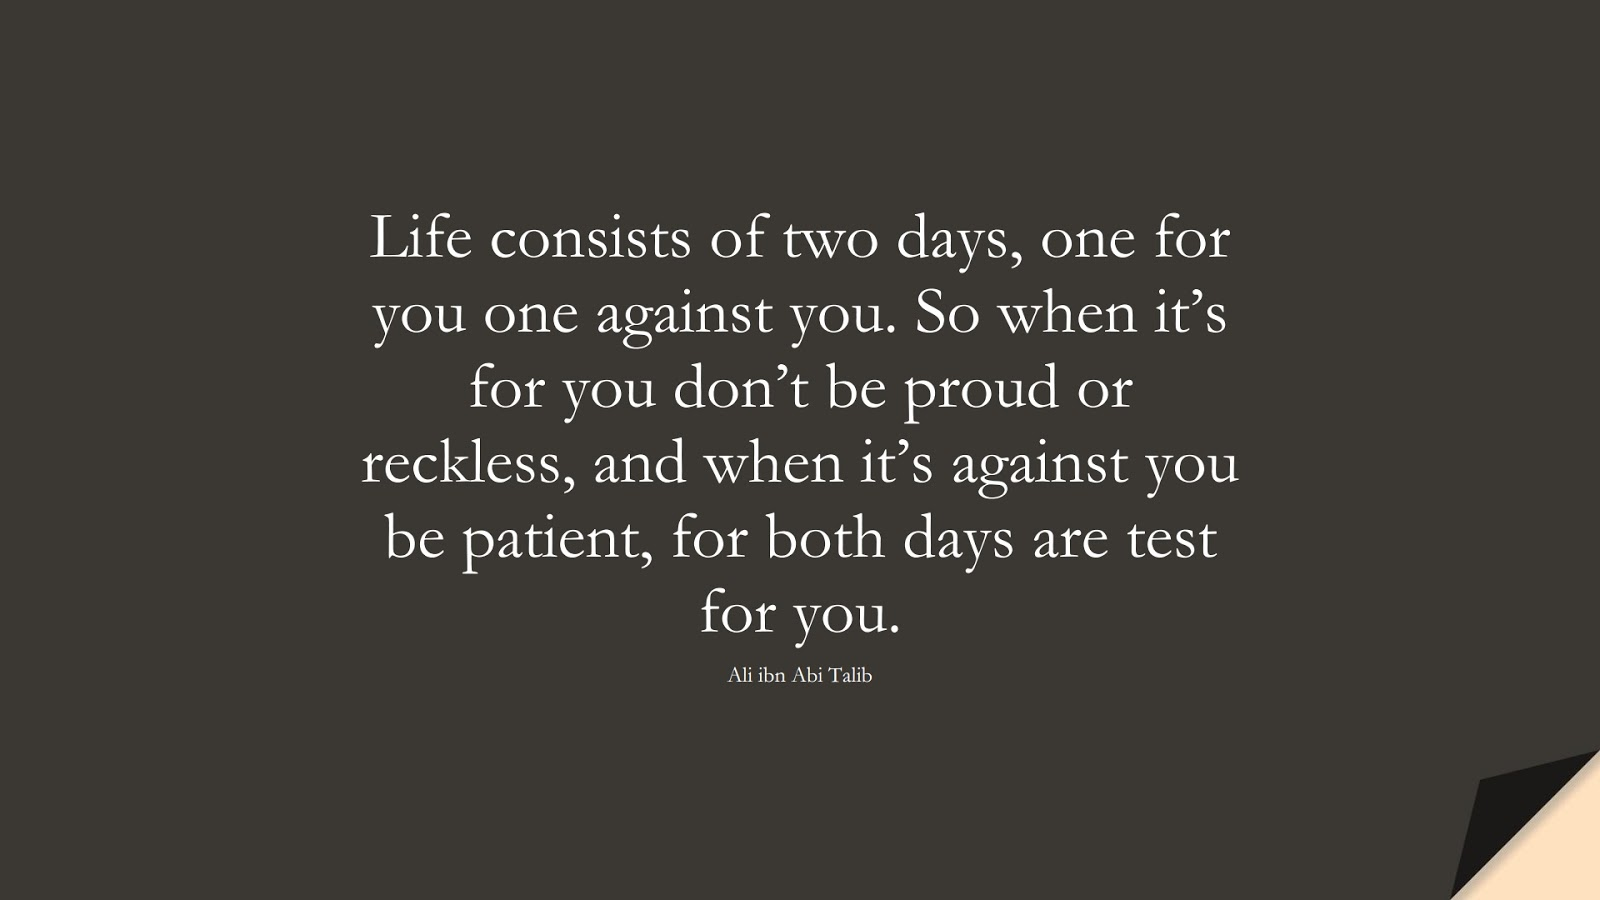 Life consists of two days, one for you one against you. So when it's for you don't be proud or reckless, and when it's against you be patient, for both days are test for you. (Ali ibn Abi Talib);  #AliQuotes